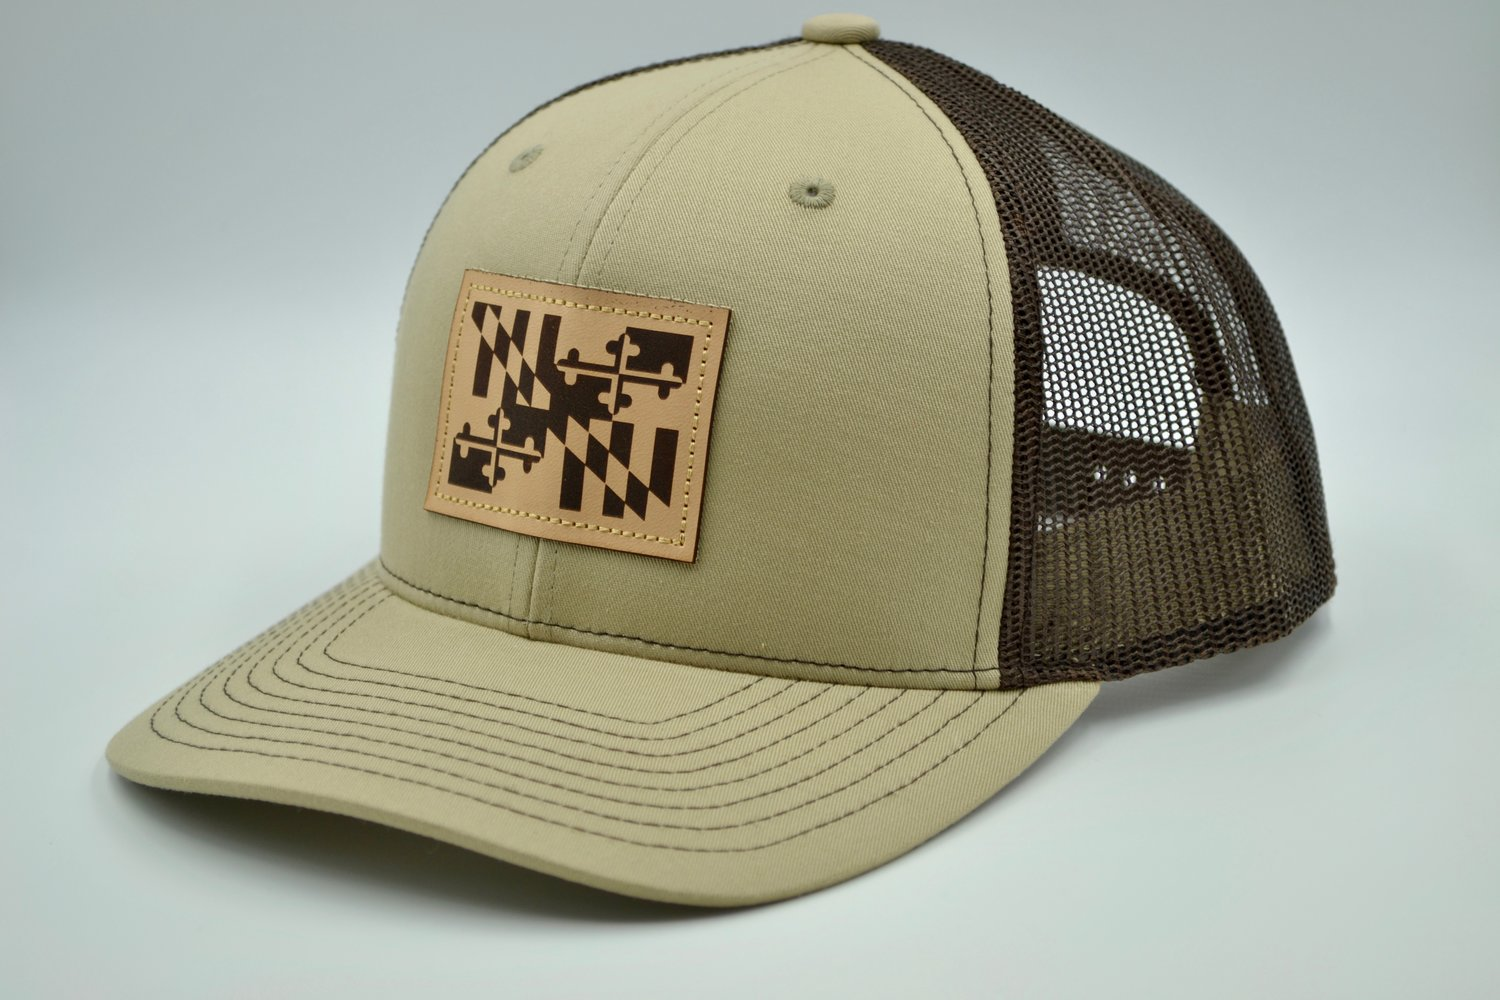 Maryland Flag Khaki and Brown Trucker Hat with Leather Patch ... 4fa60878009